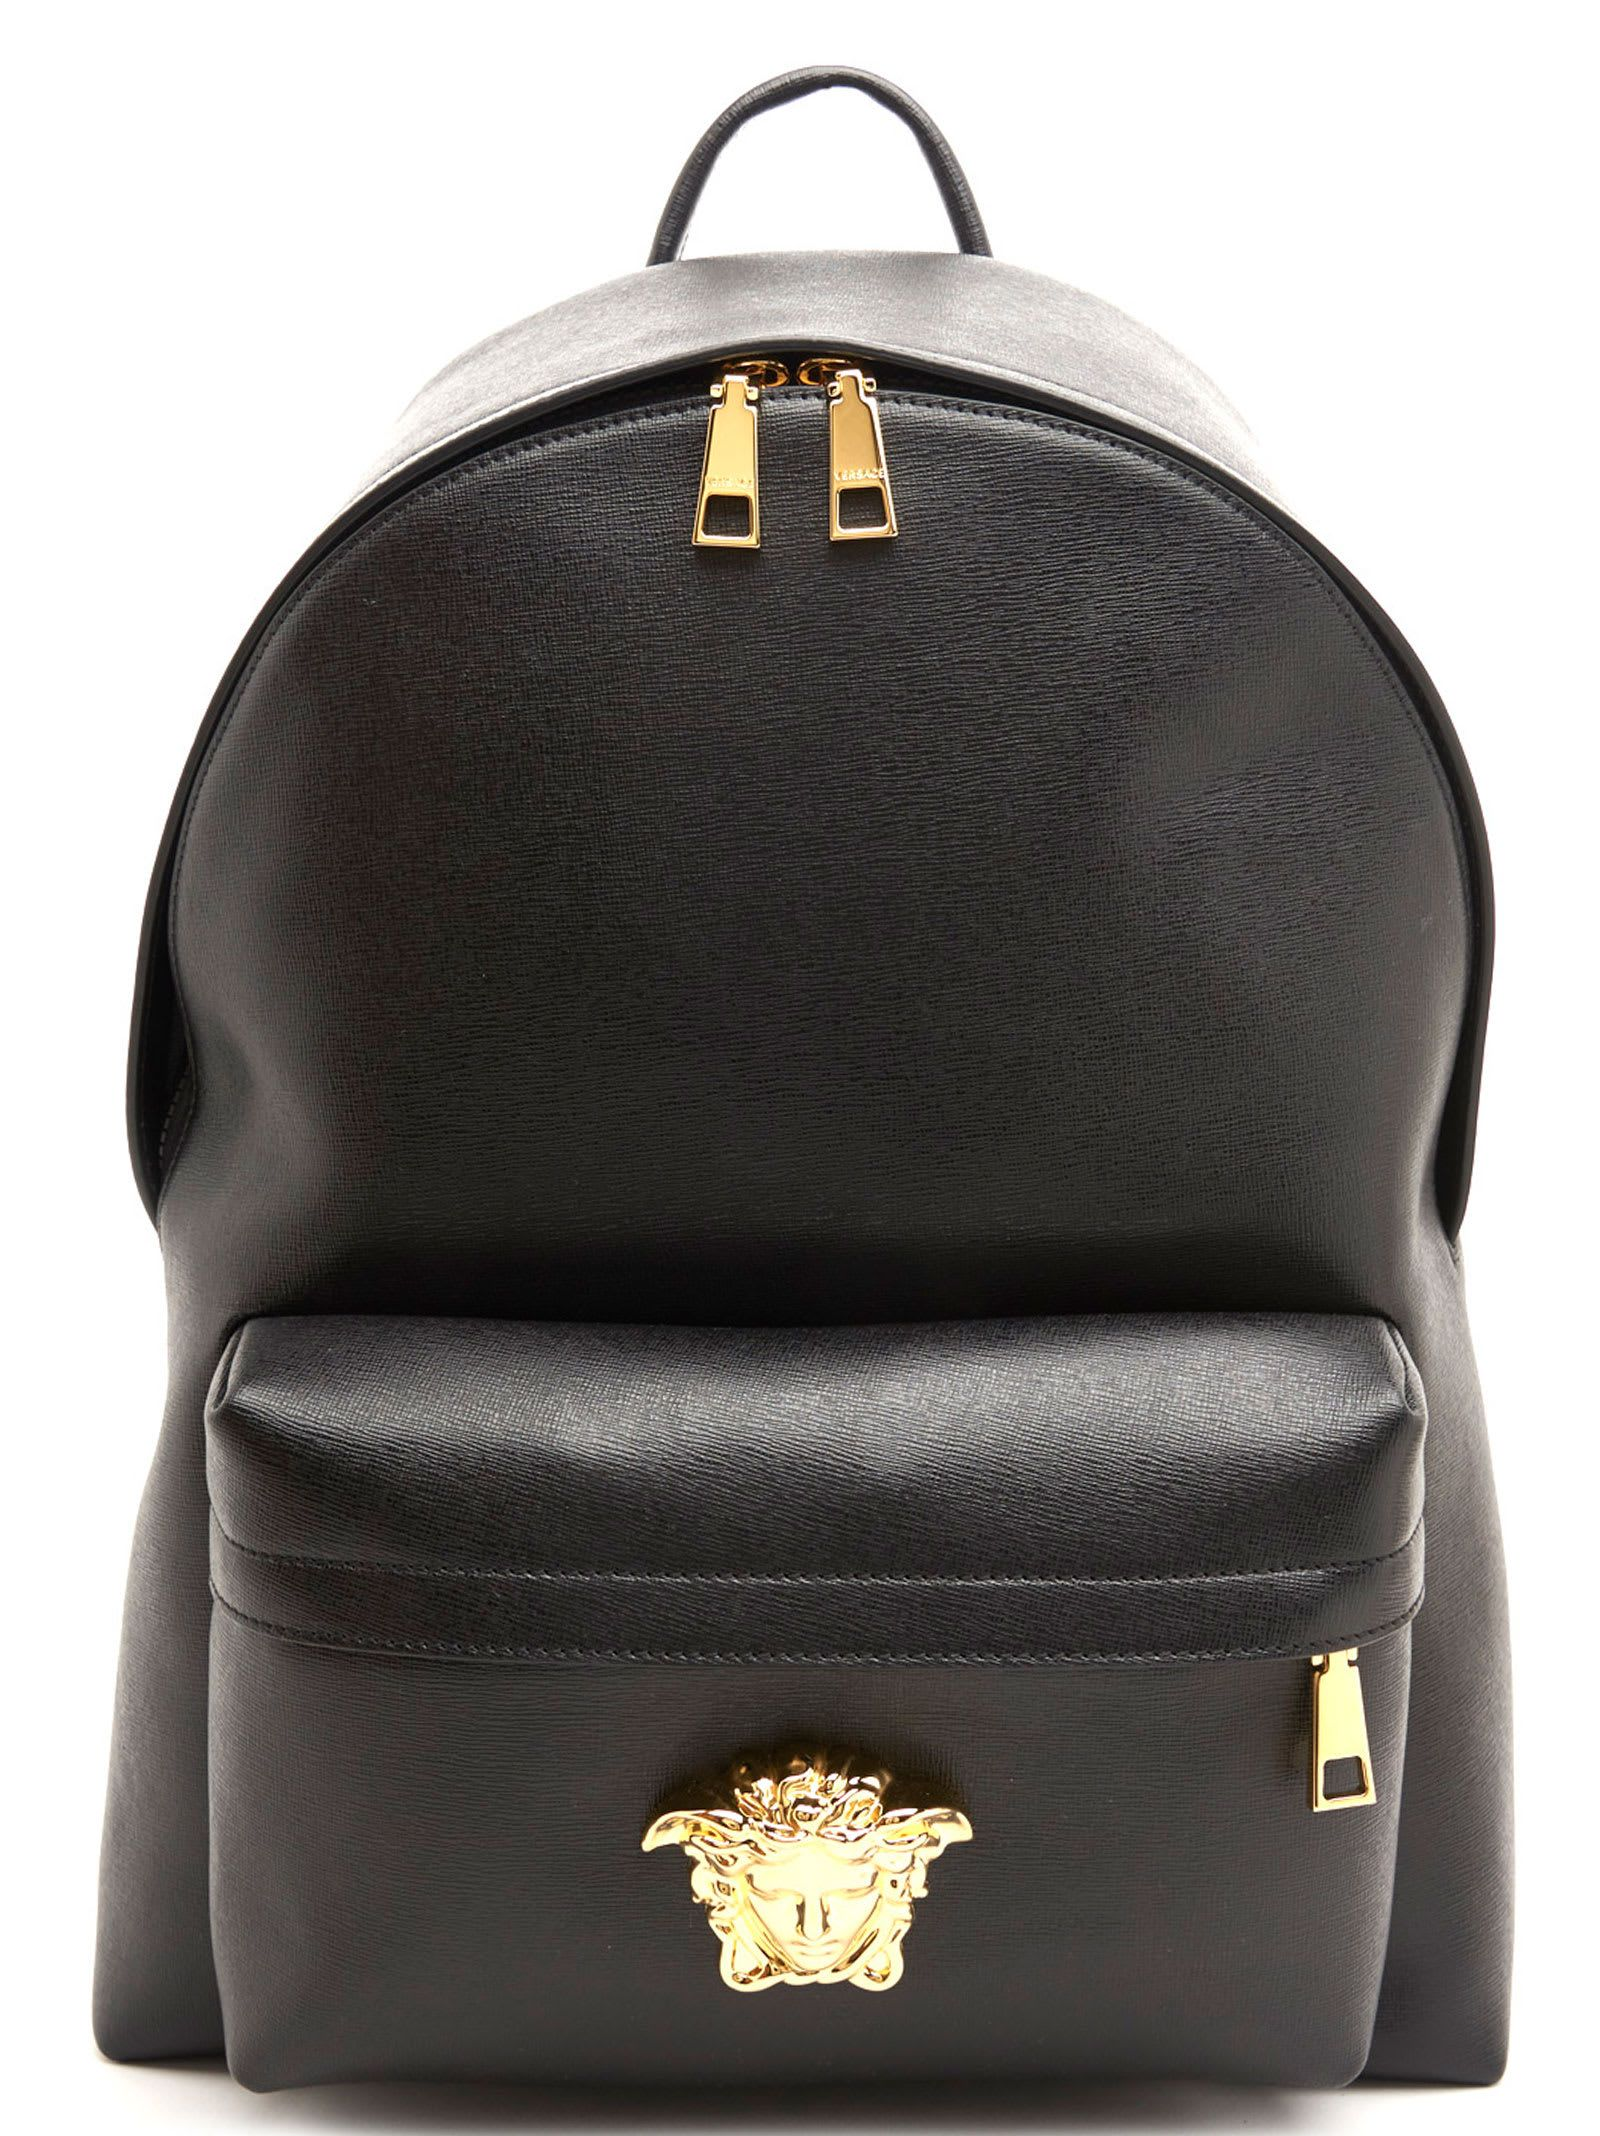 Best price on the market at italist versace versace bag